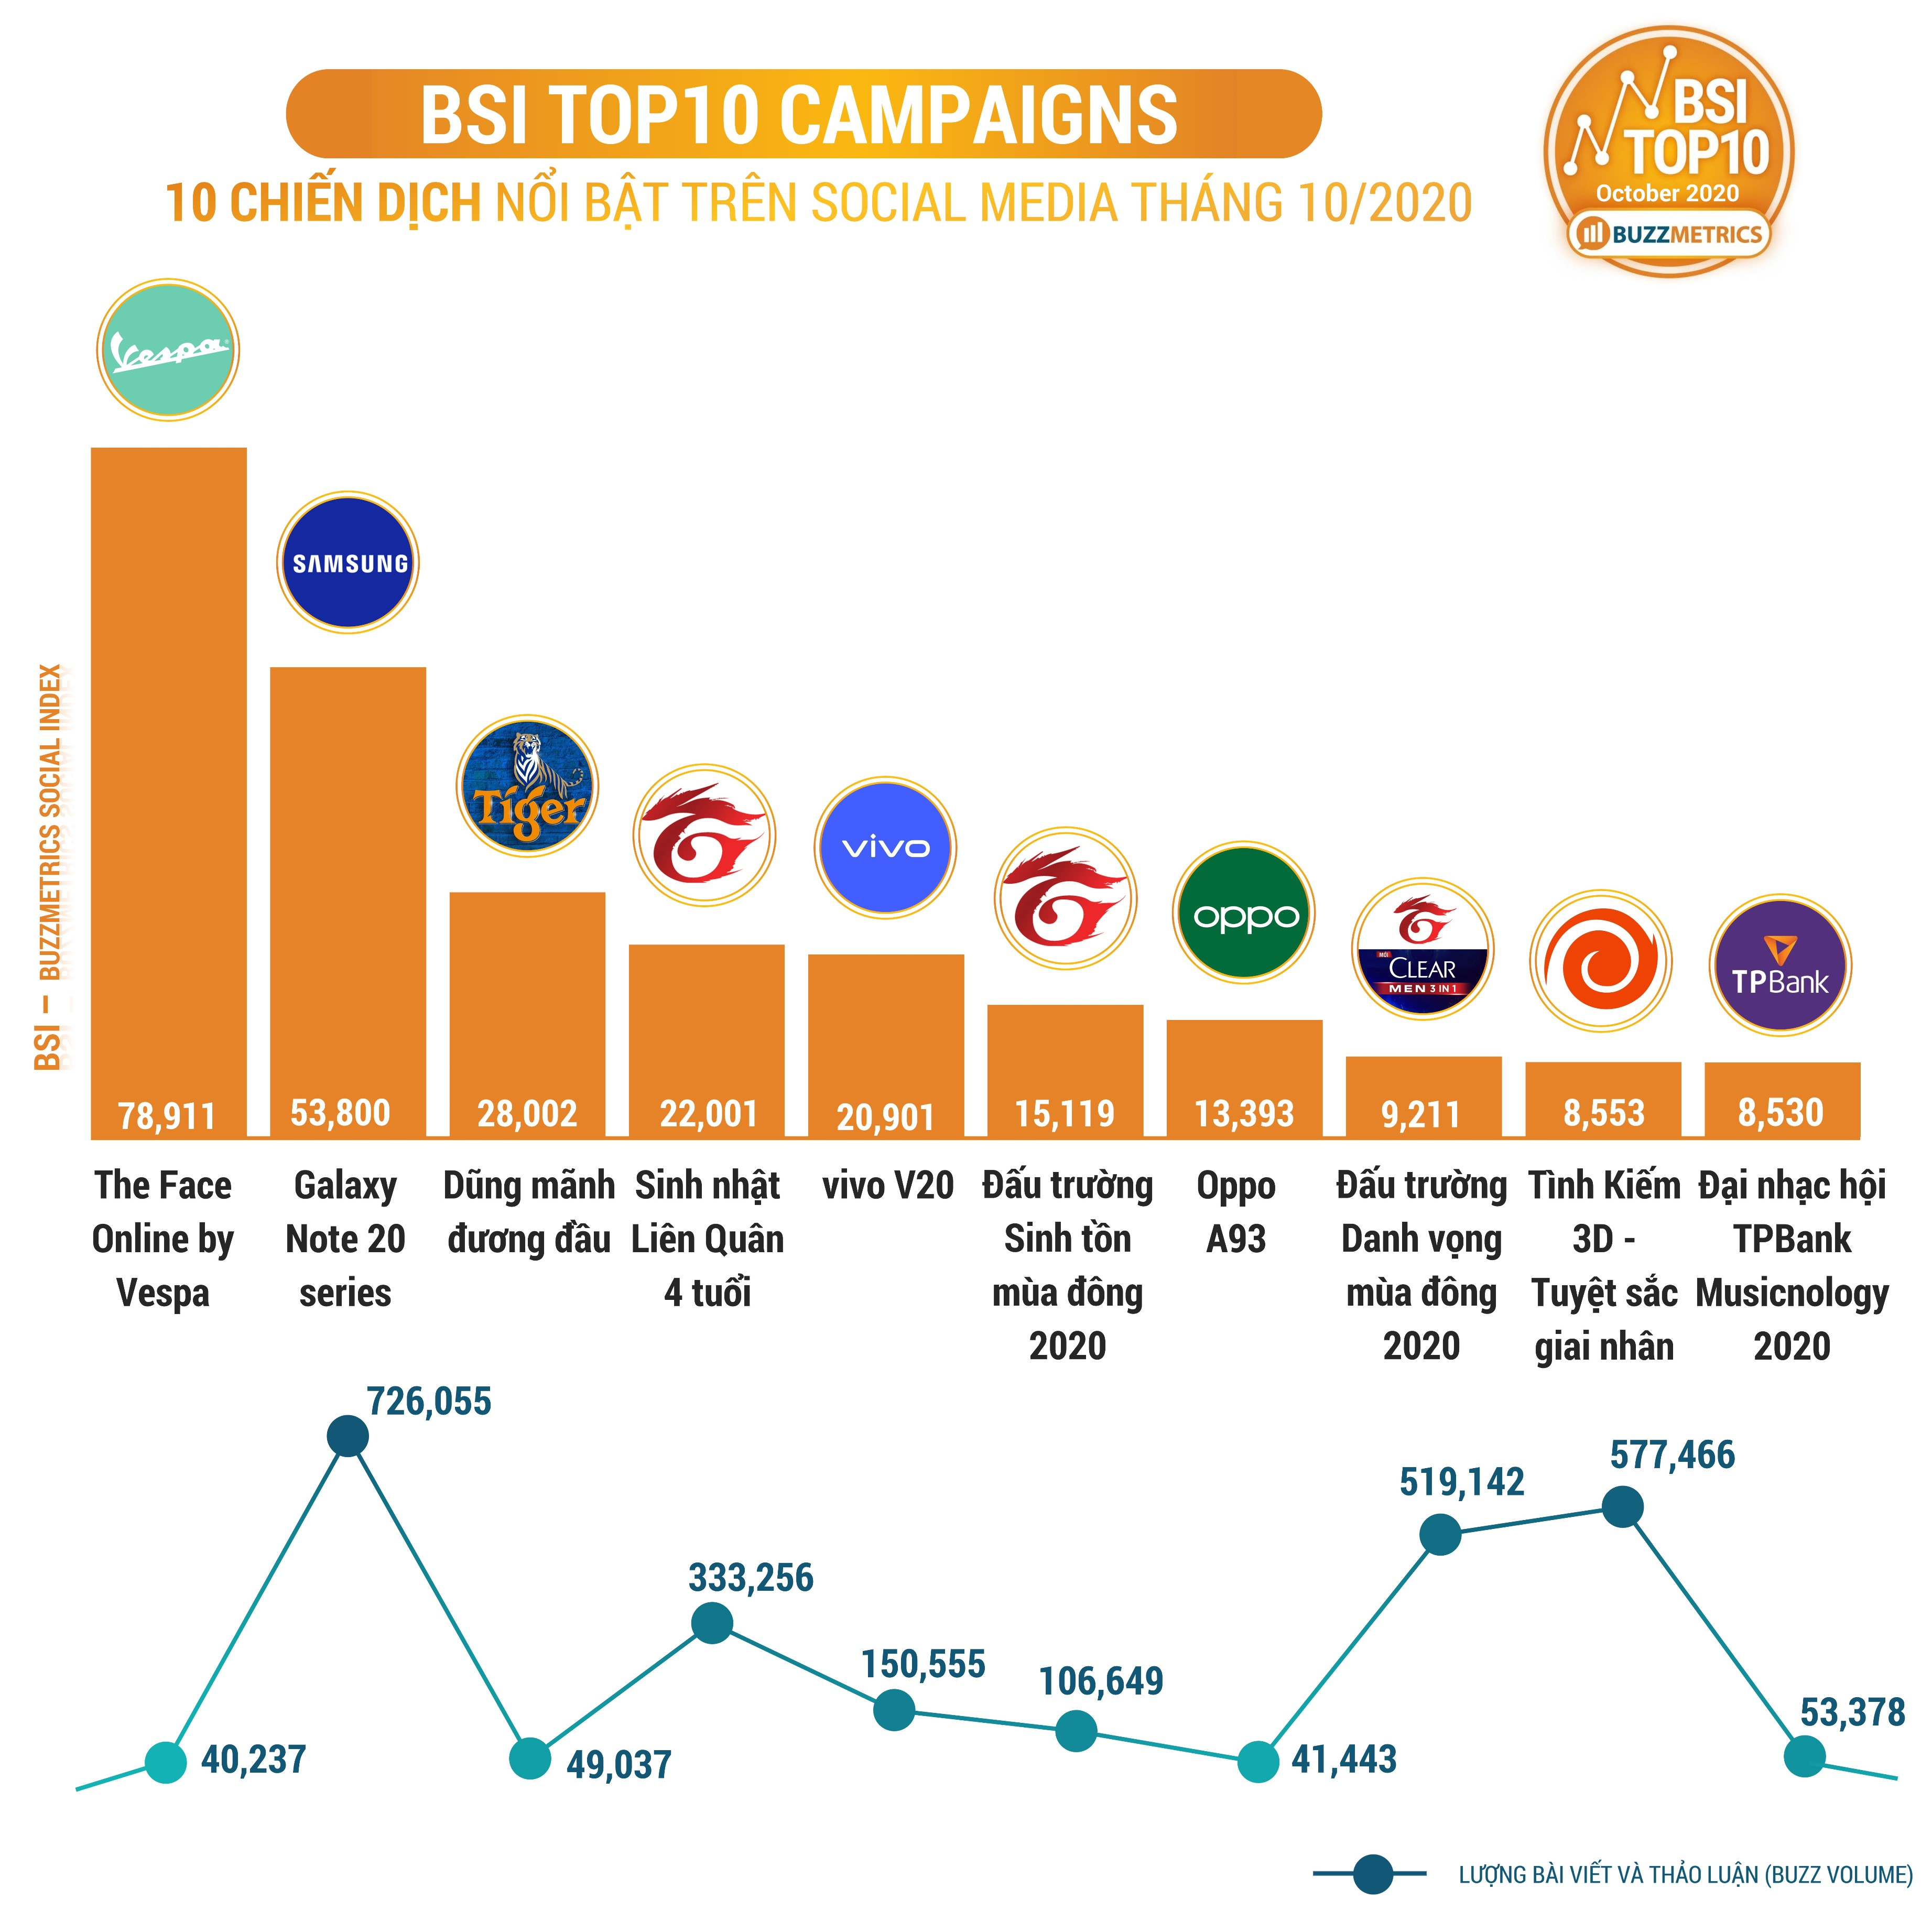 BSI Top10 OCT 2020 CAMPAIGNS chart